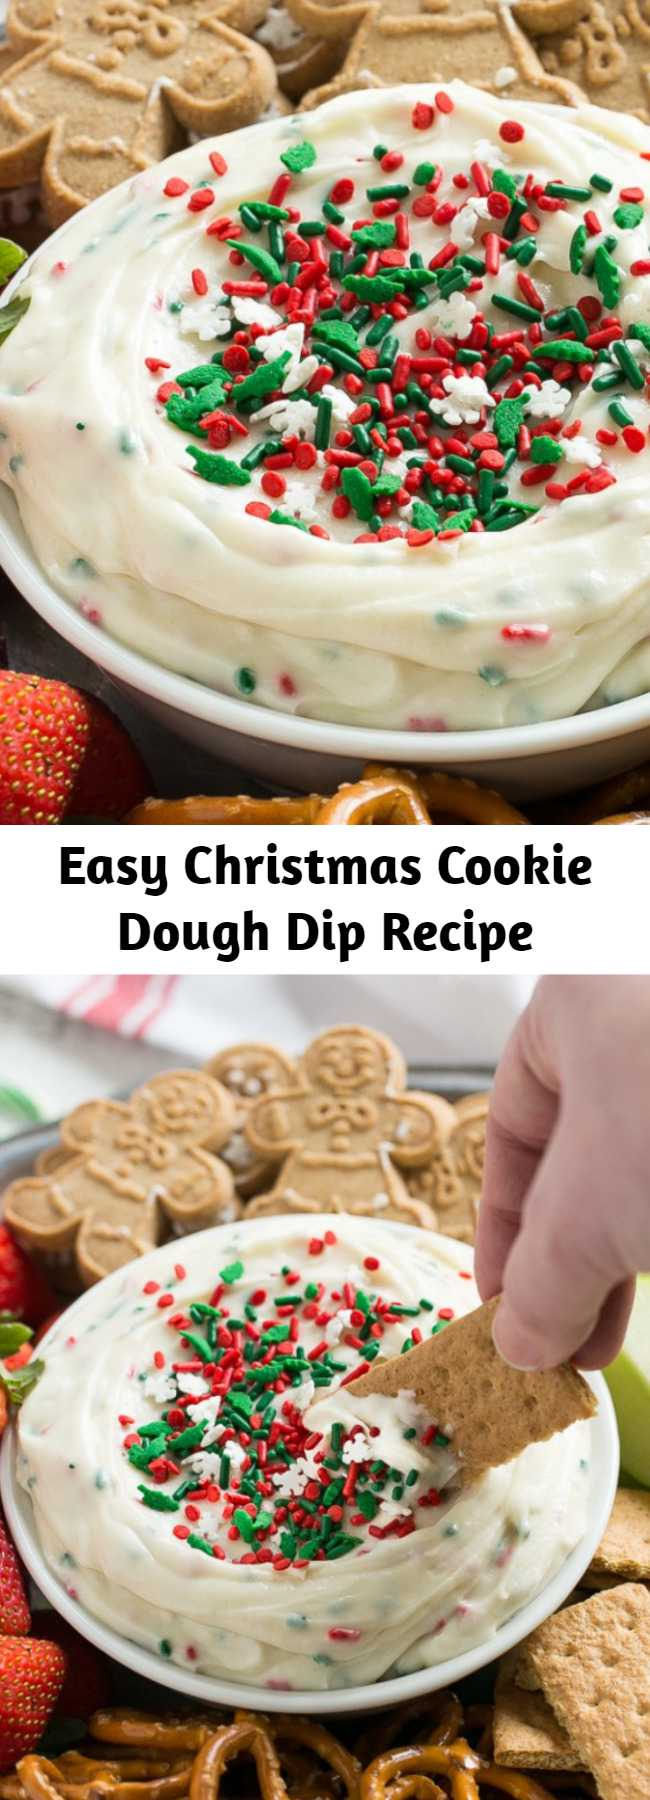 Easy Christmas Cookie Dough Dip Recipe - Looking for an easy and unique offering for your next holiday party? This cookie dough dip is sure to be a huge hit! This recipe for cookie dough dip has a fluffy and creamy base of eggless Christmas cookie dough that's swirled with plenty of holiday sprinkles and served with fruit and cookies for dipping. It only takes 5 minutes to make!